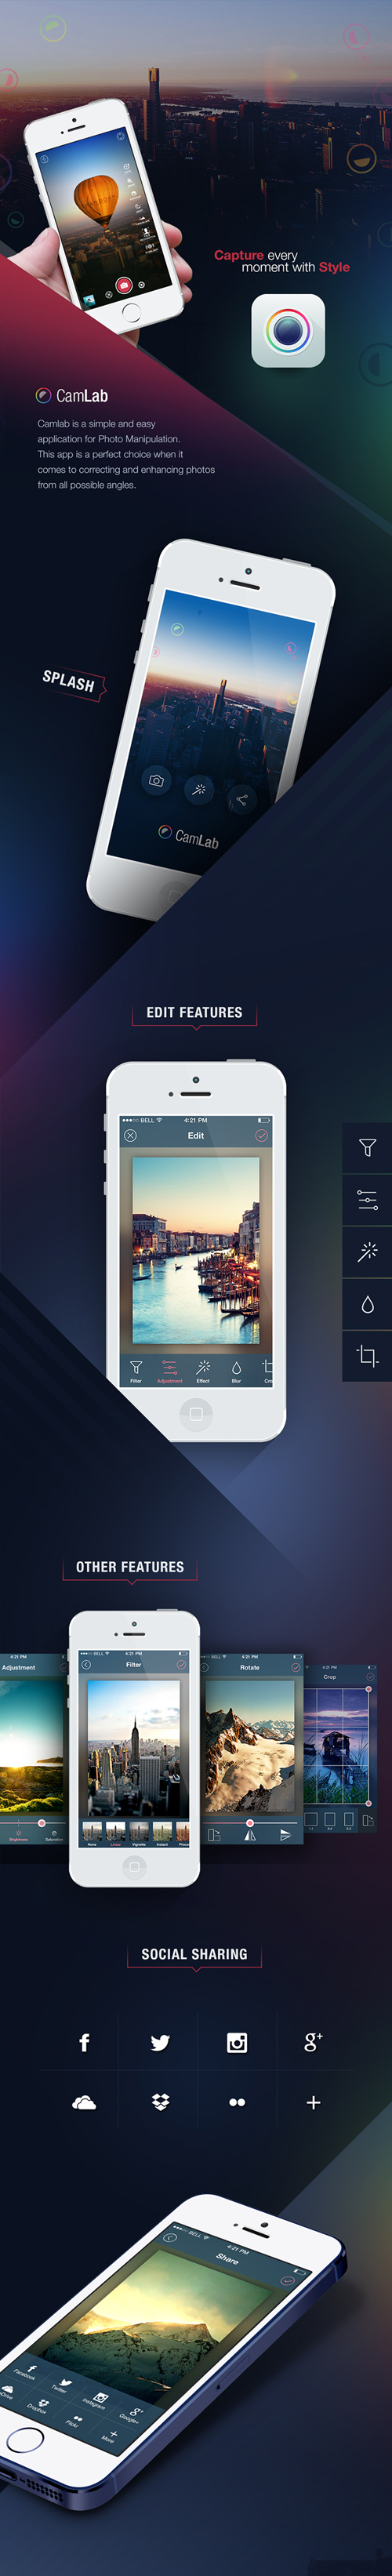 Amazing Mobile App UI Designs with Ultimate User Experience - 3